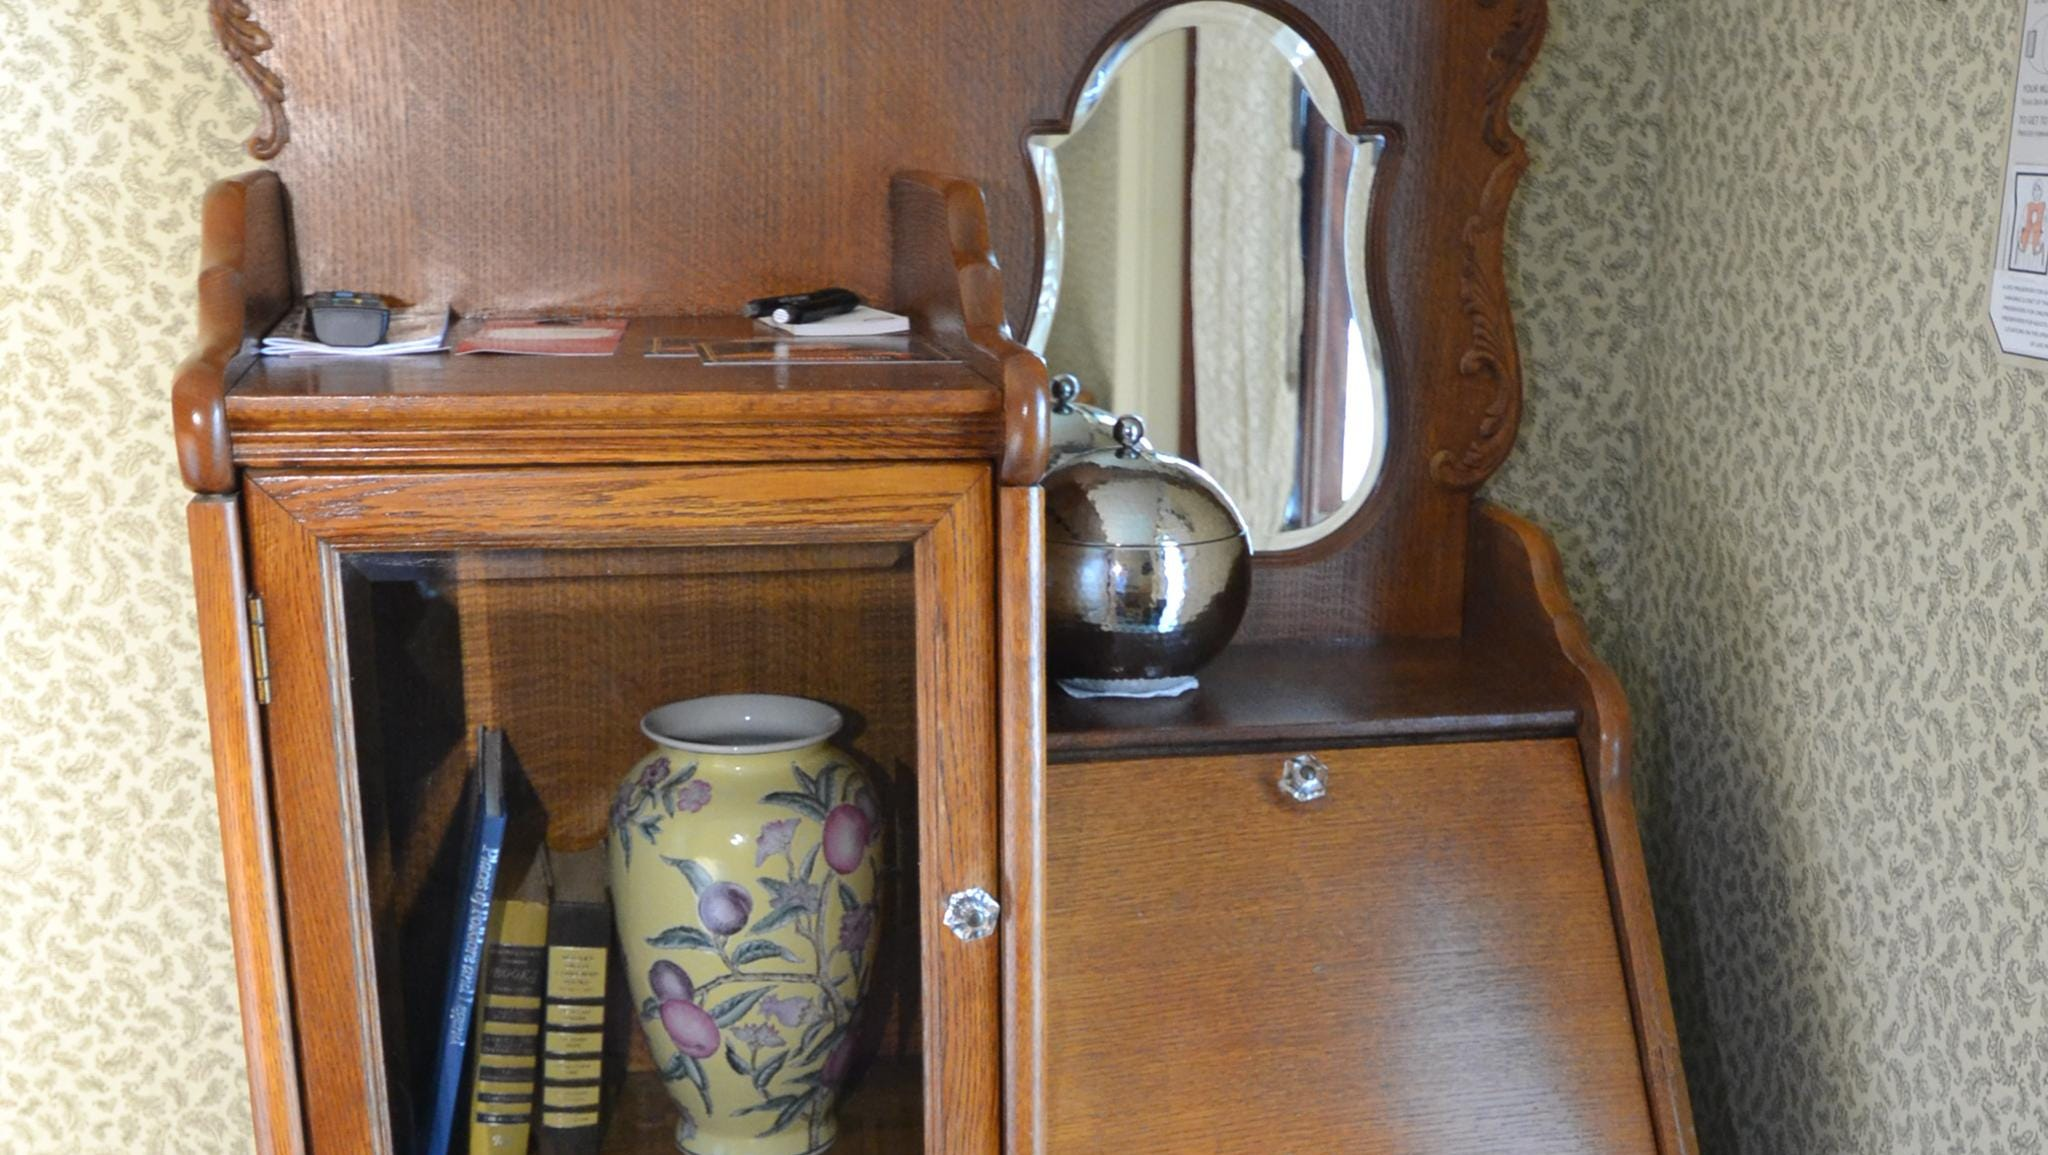 Instead of the built-in desks and storage areas found on many modern river ships, most of the American Queen's cabins feature free-standing furniture.